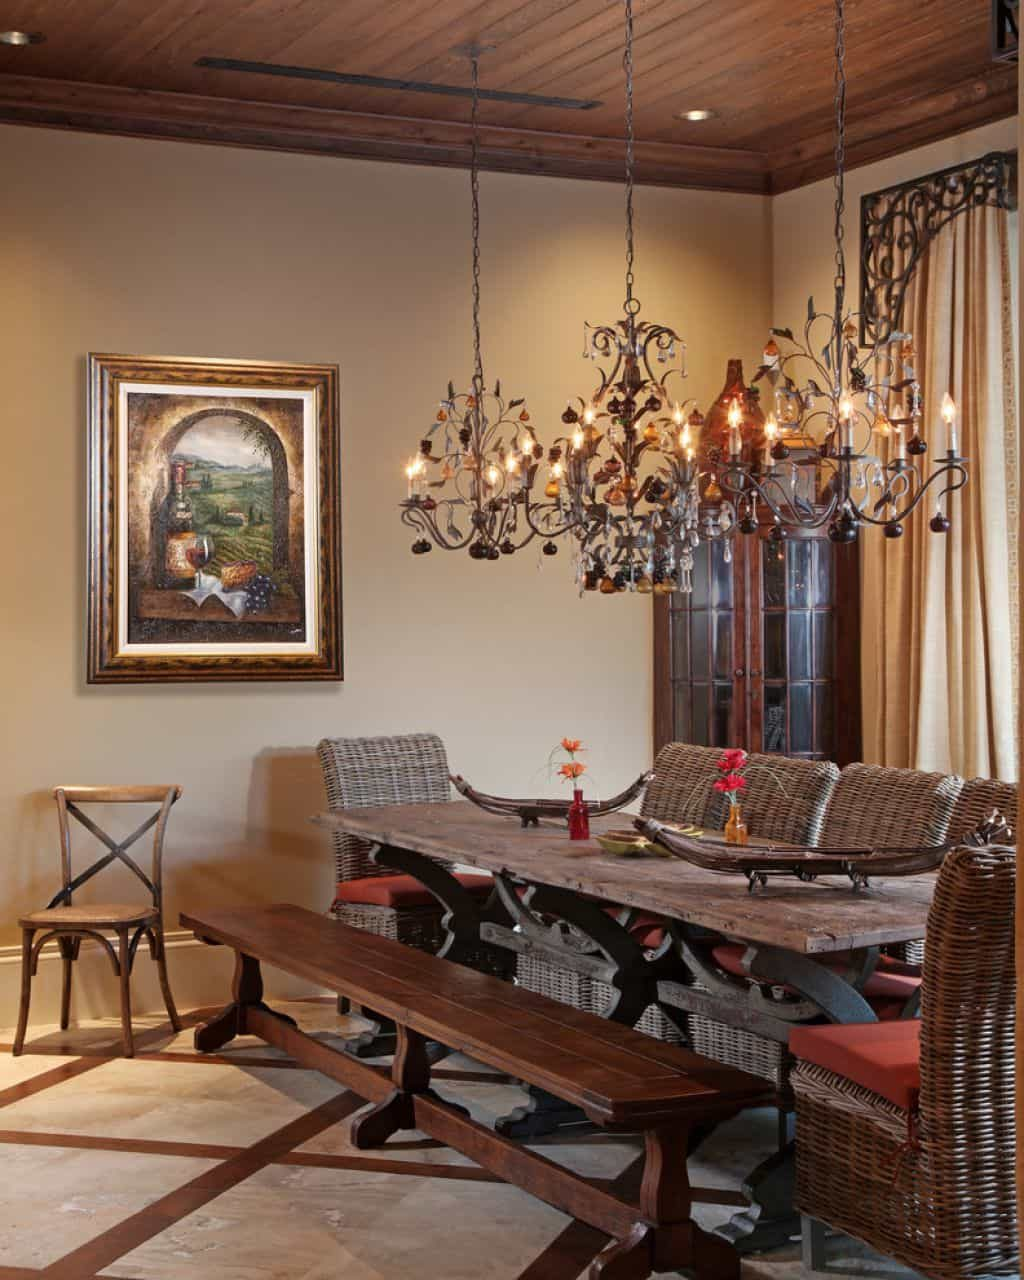 Dining Room Using Three Hanging Wrought Iron Chandeliers Over Wooden